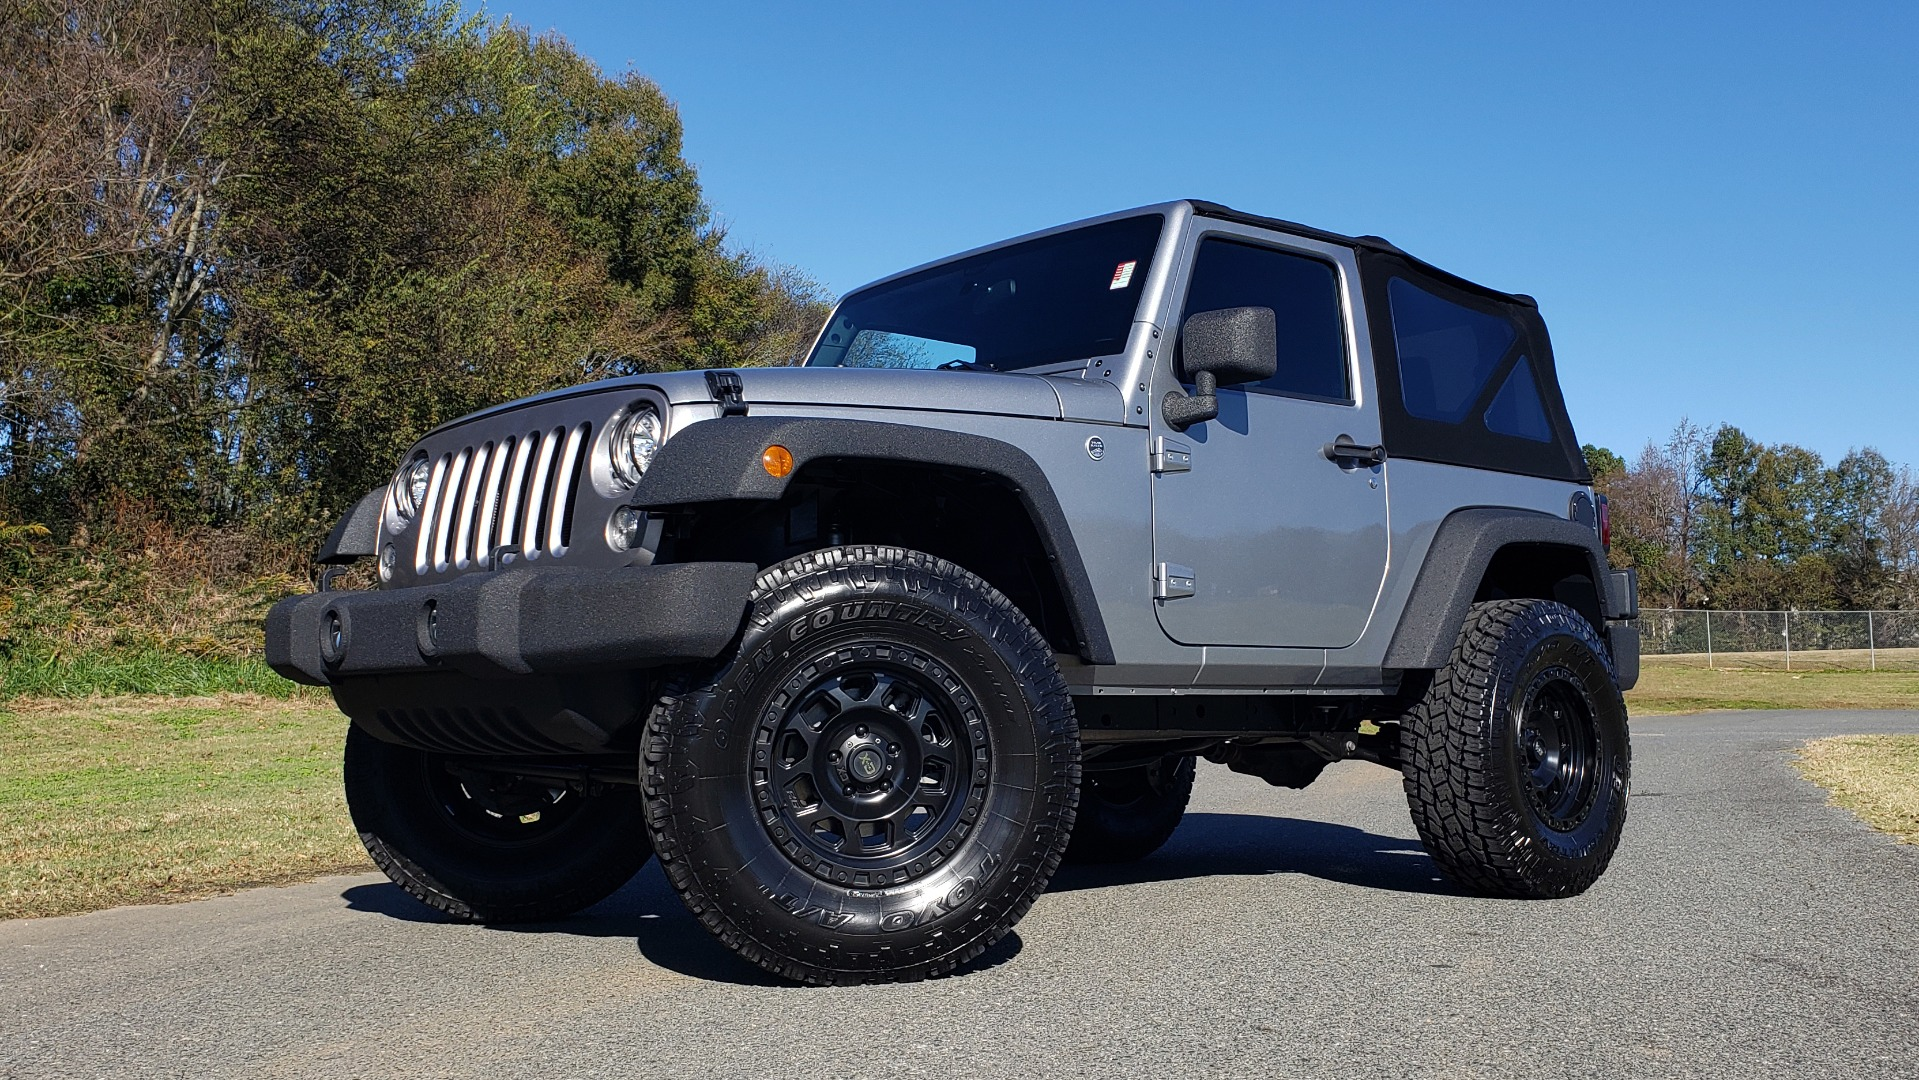 Used 2017 Jeep WRANGLER SPORT 4X4 / 3.6L V6 / MANUAL / AIR / LED LIGHTING / TOW GRP / AL for sale $26,495 at Formula Imports in Charlotte NC 28227 1